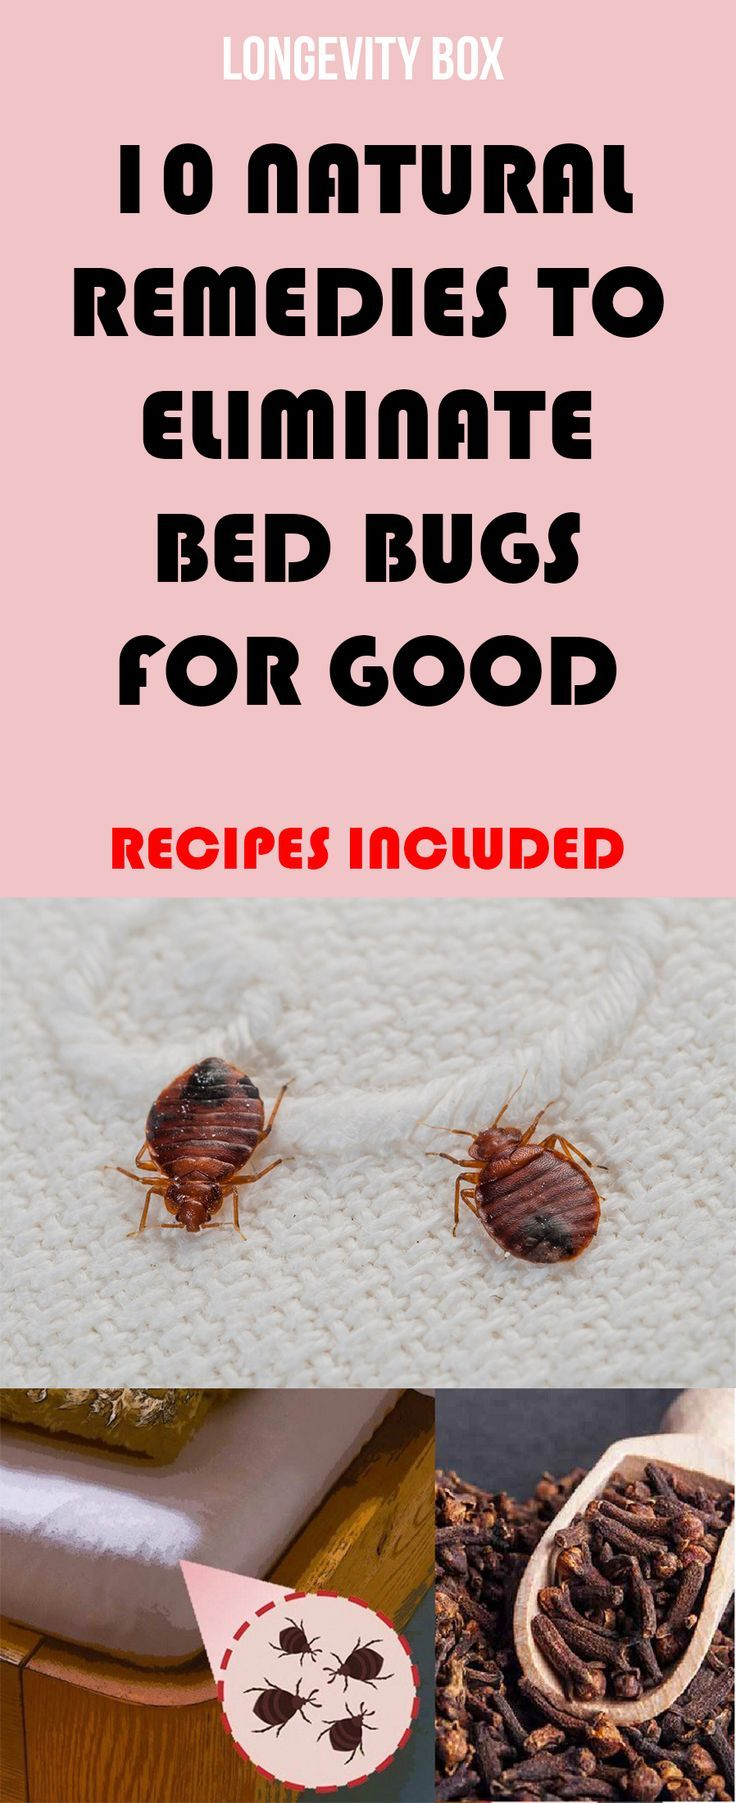 10 Natural Remedies to Eliminate Bed Bugs for Good